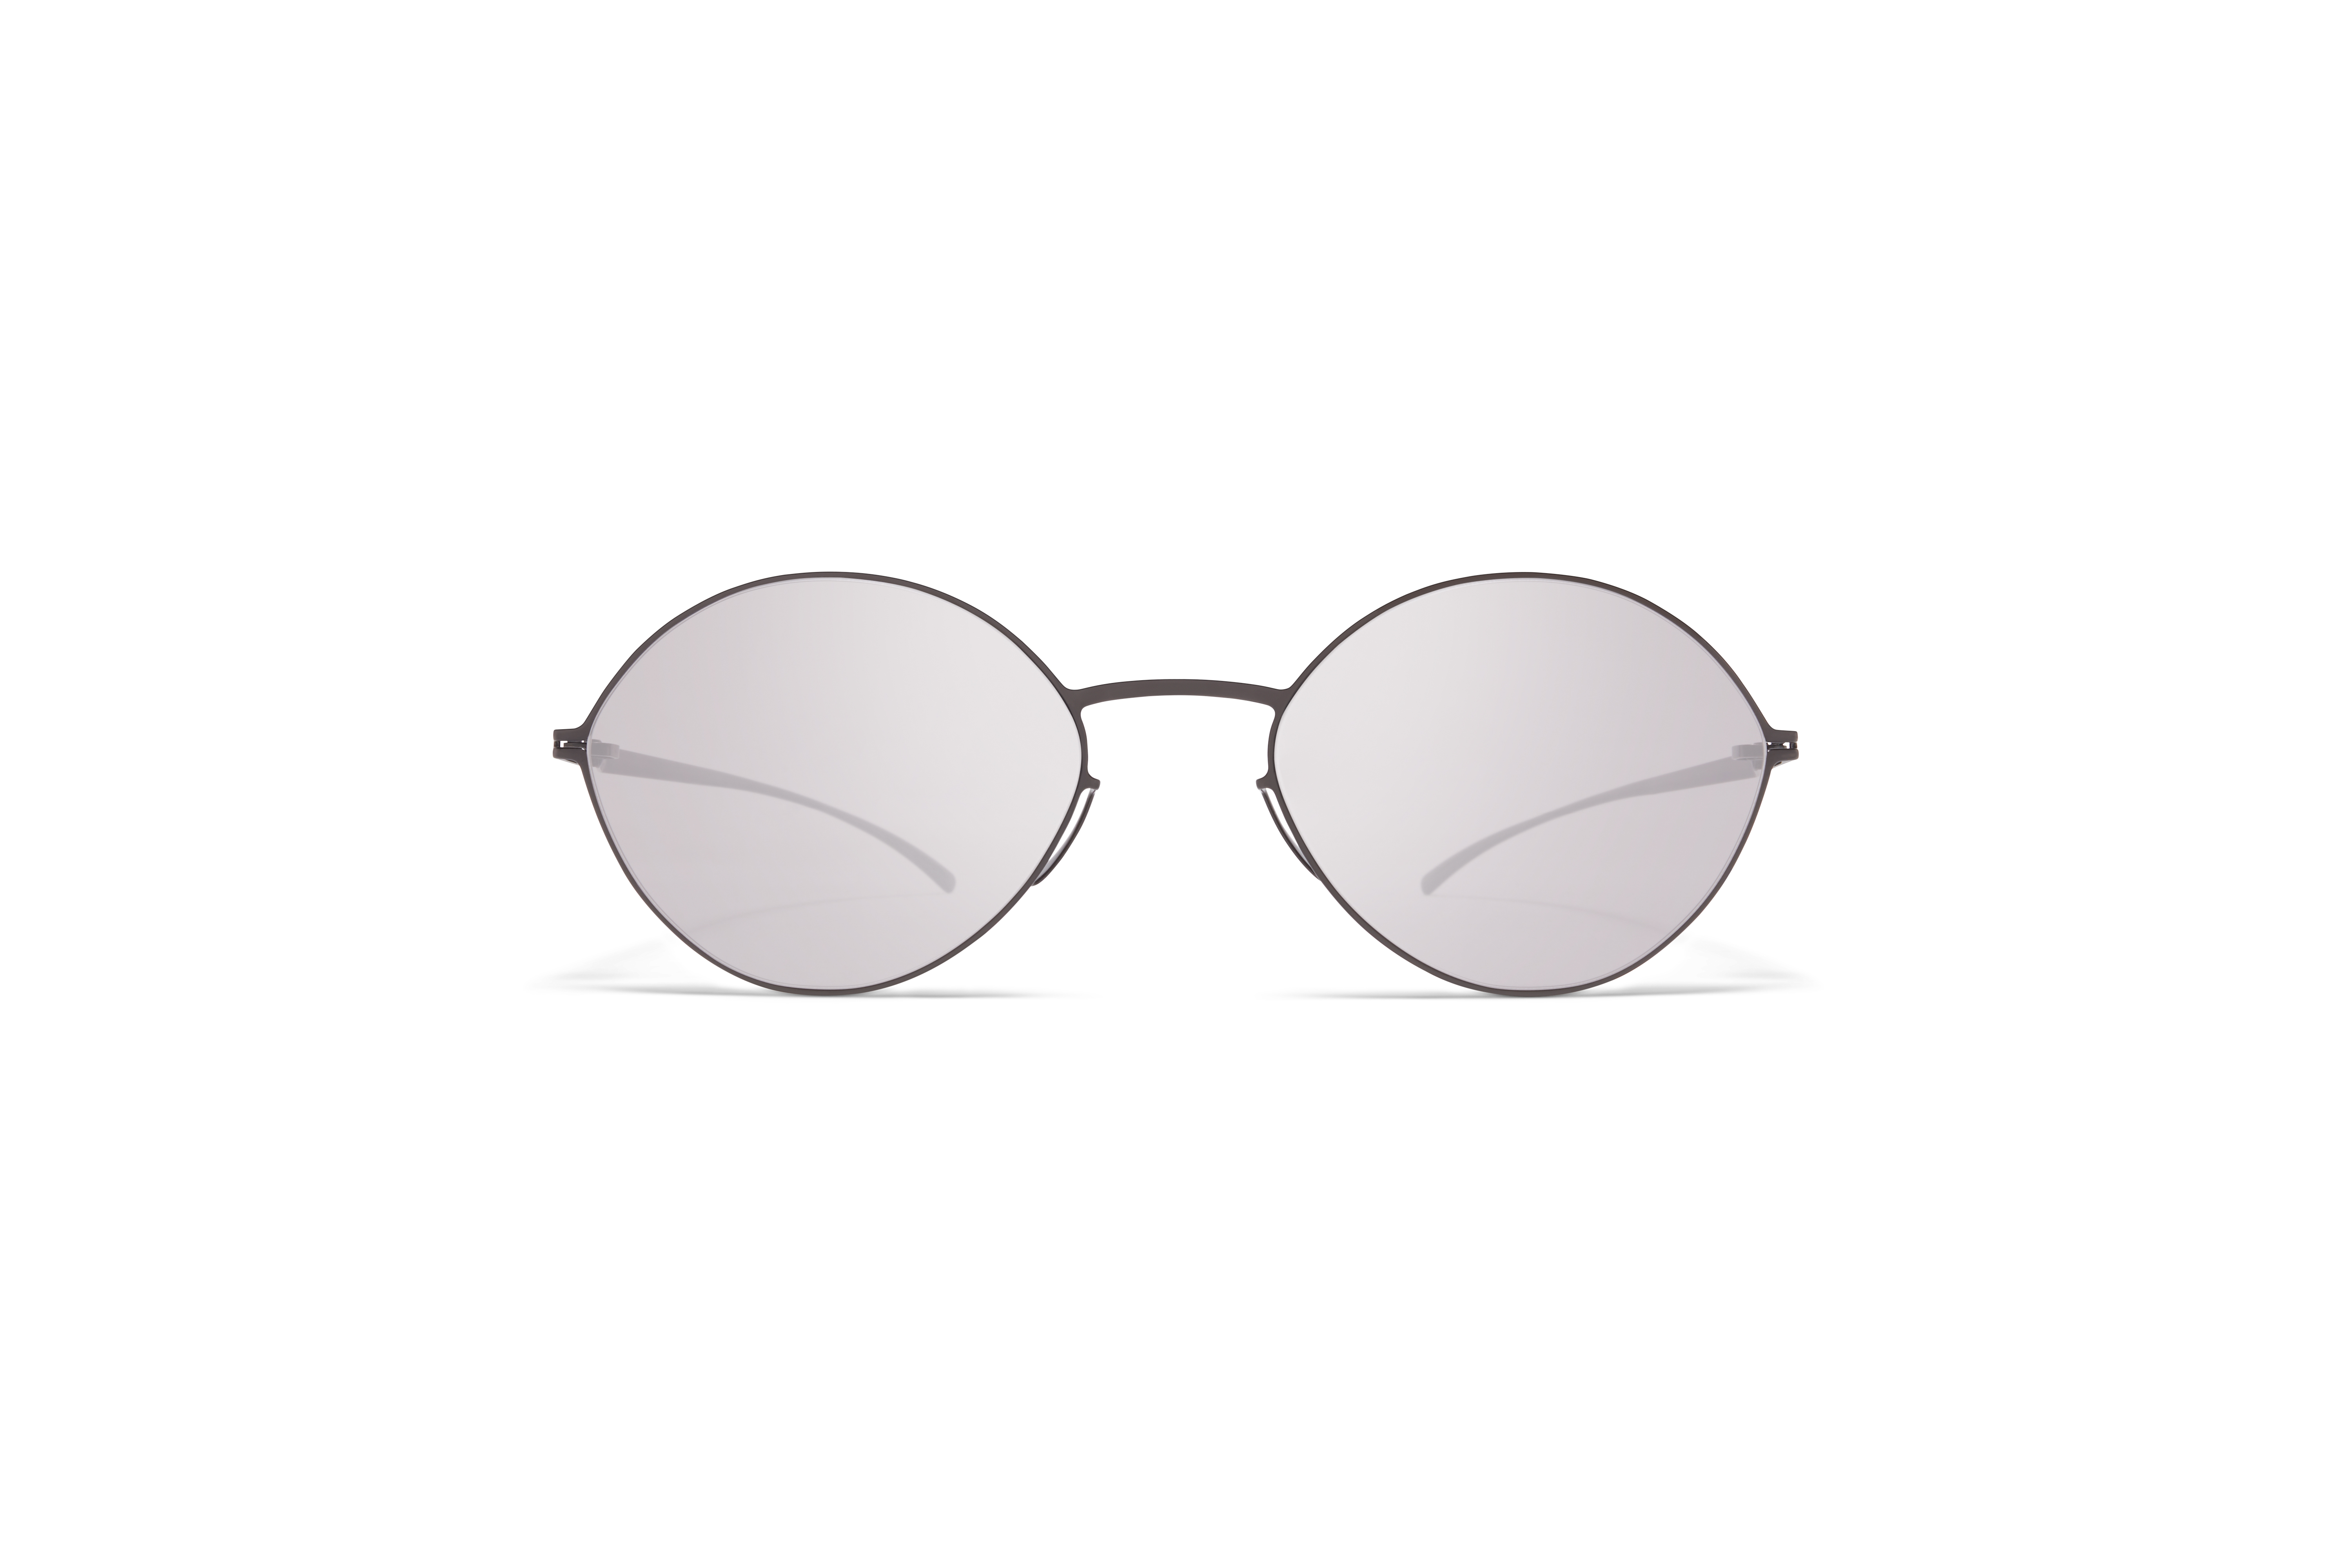 MYKITA Mm Sun Mmesse020 E15 Shiny Graphite Warm5ae19fdd451b5